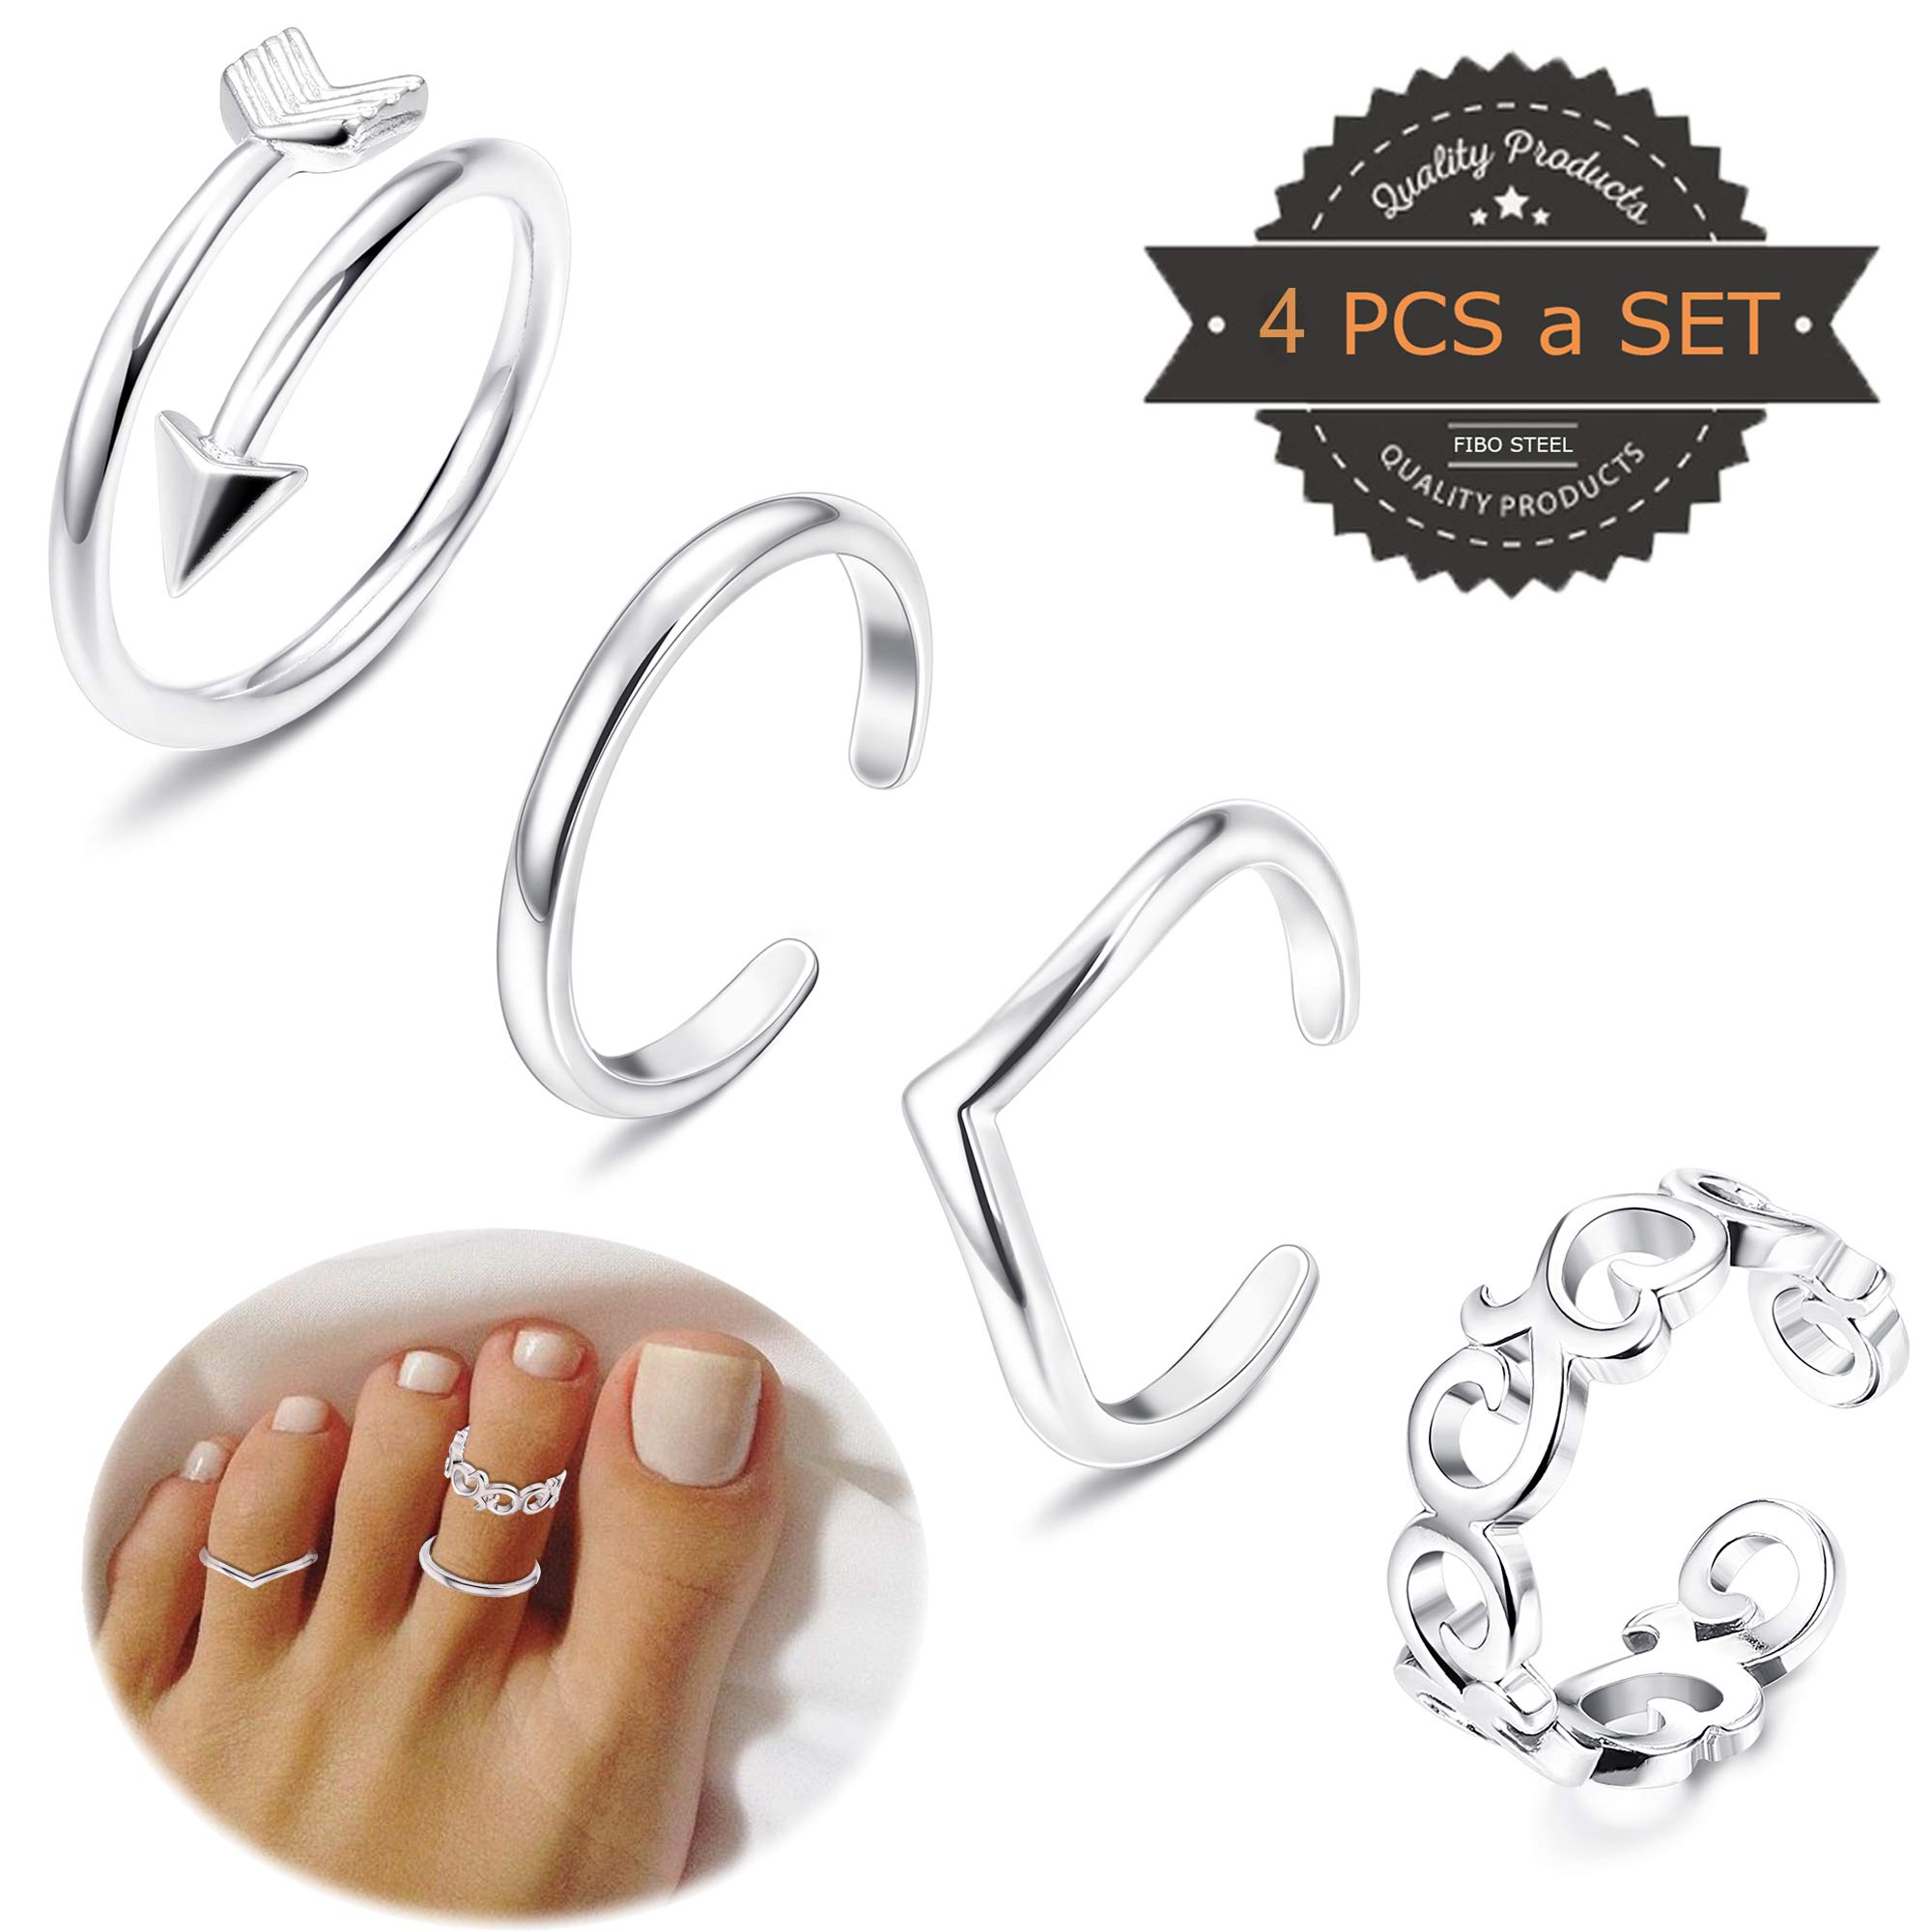 FIBO STEEL 4 Pcs Open Toe Rings for Women Girls Arrow Tail Band Toe Ring Adjustable